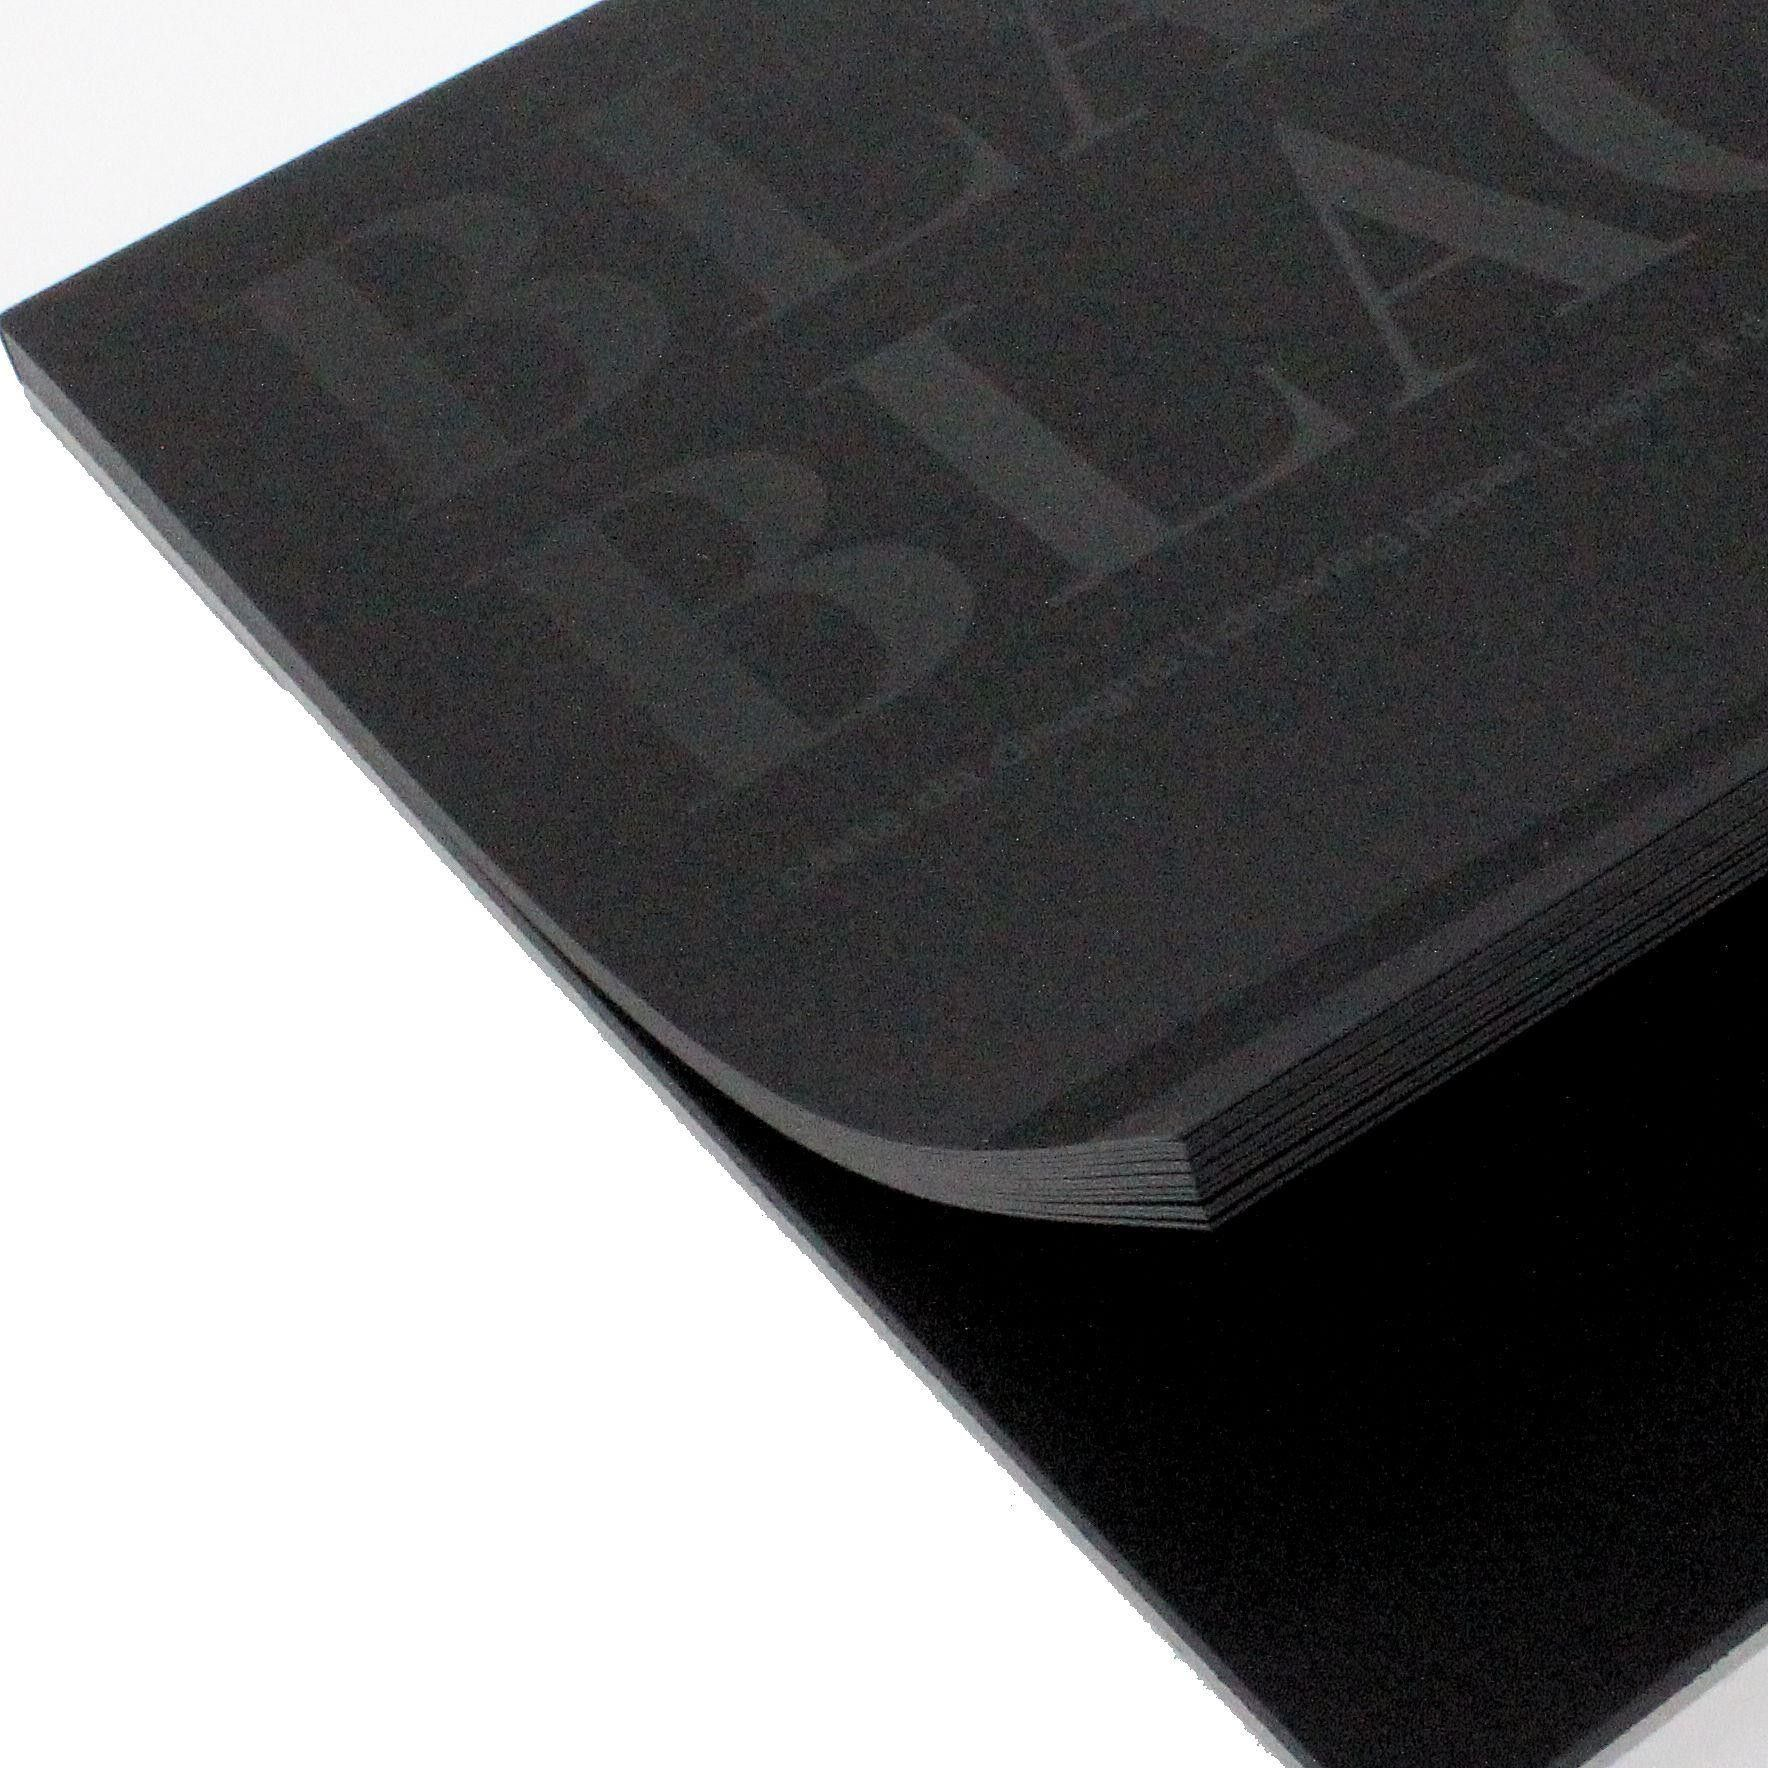 Fabriano Black Black Drawing Paper Pad A4 20 Sheets 300gsm With